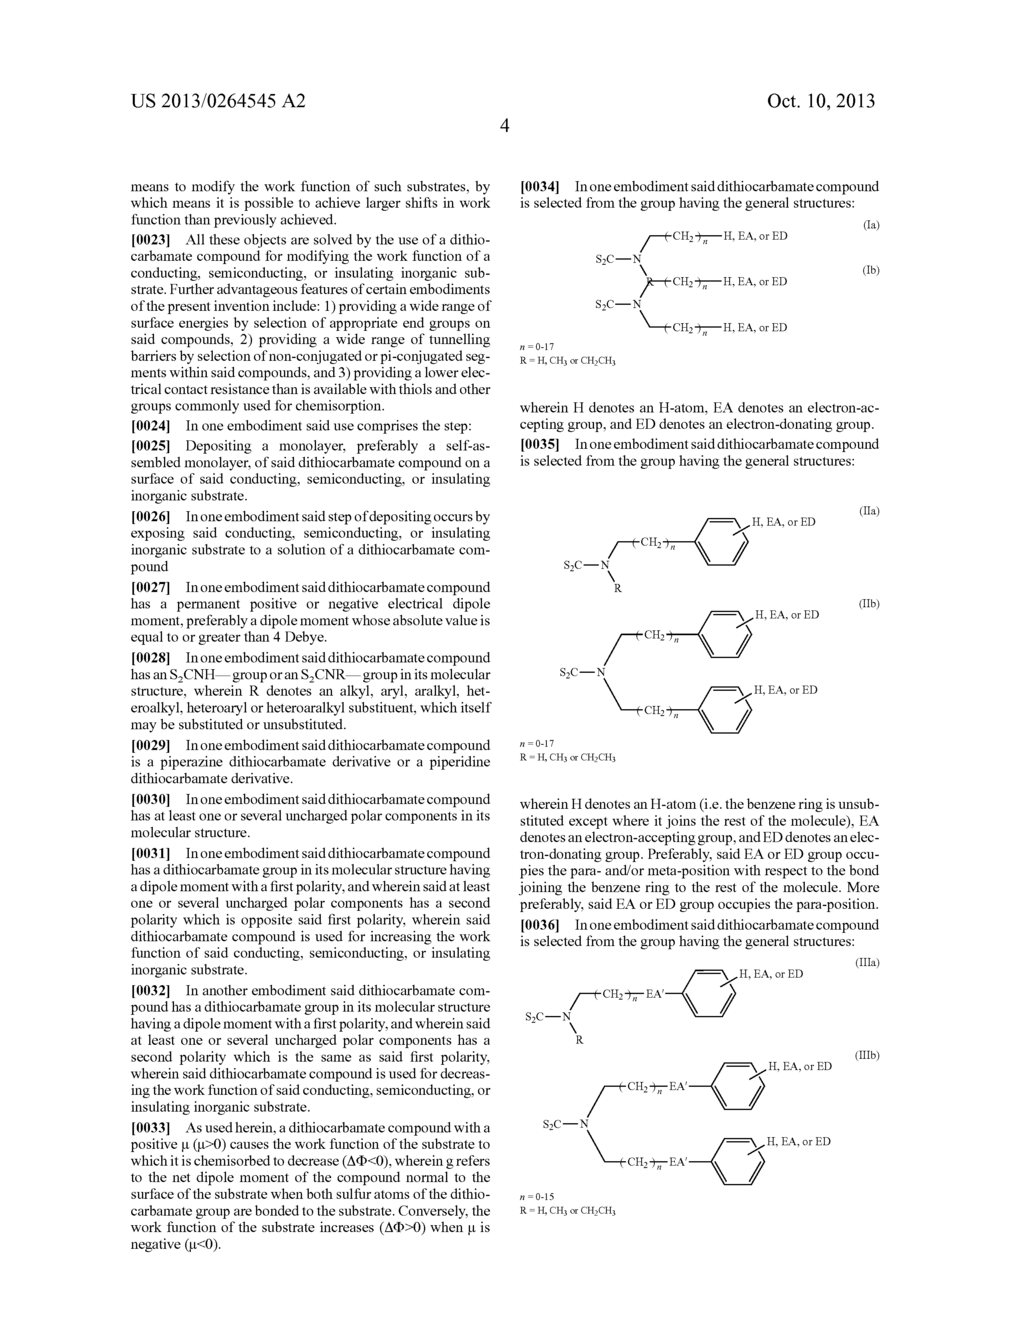 USES OF DITHIOCARBAMATE COMPOUNDS - diagram, schematic, and image 30